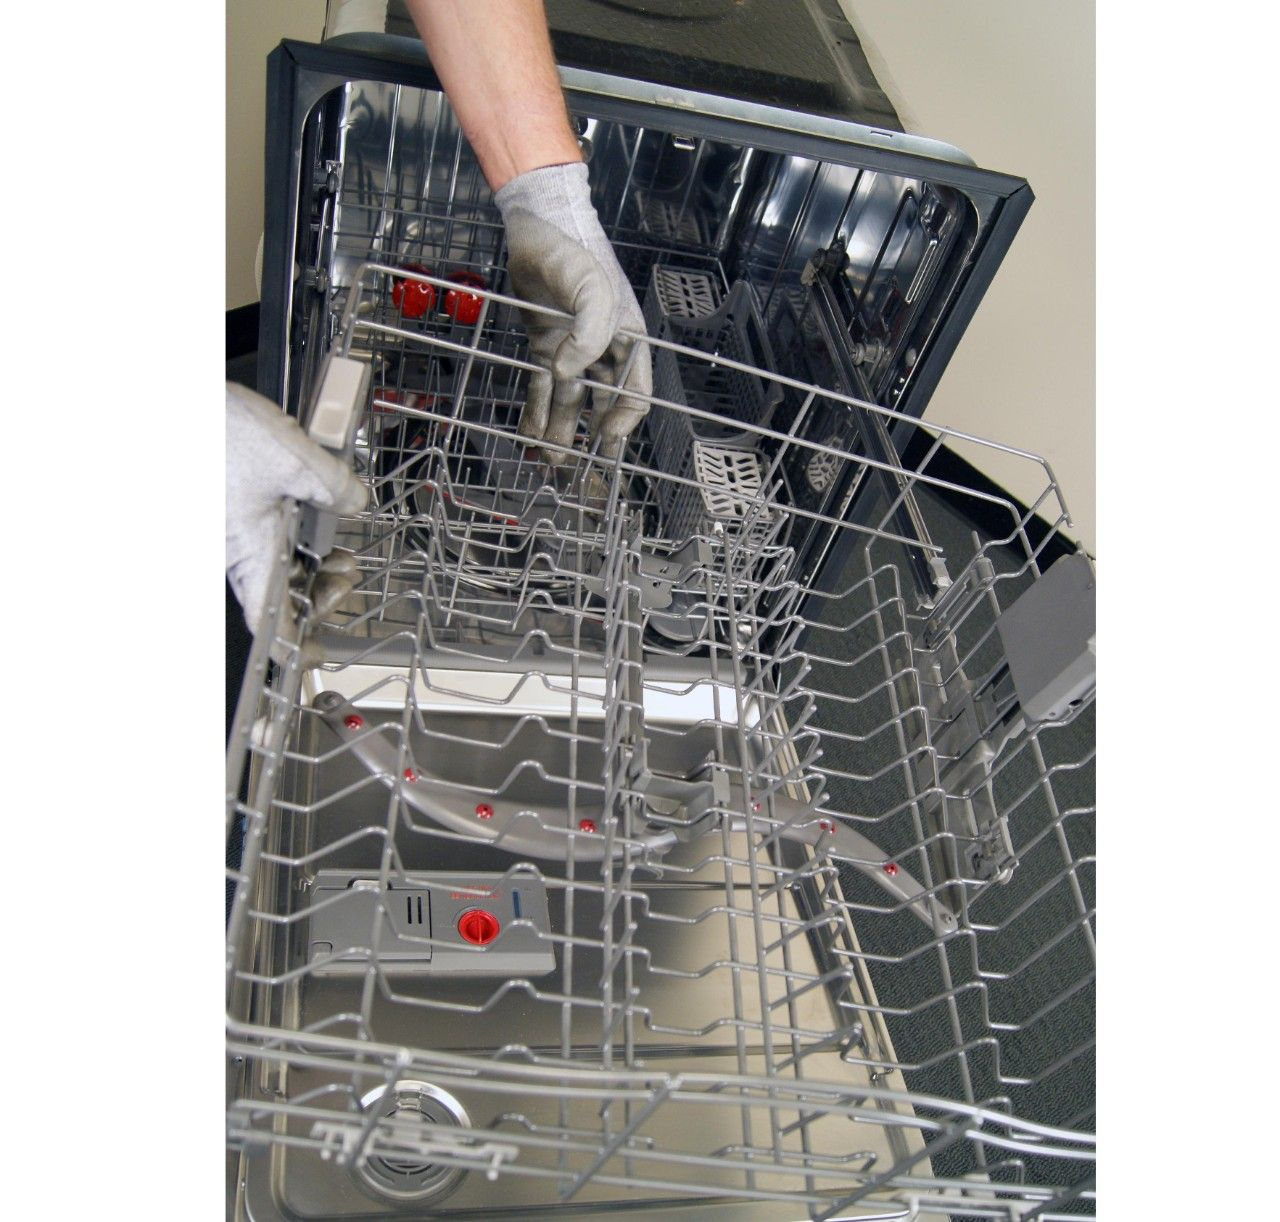 Dw1153how to replace dishwasher top rack adjuster